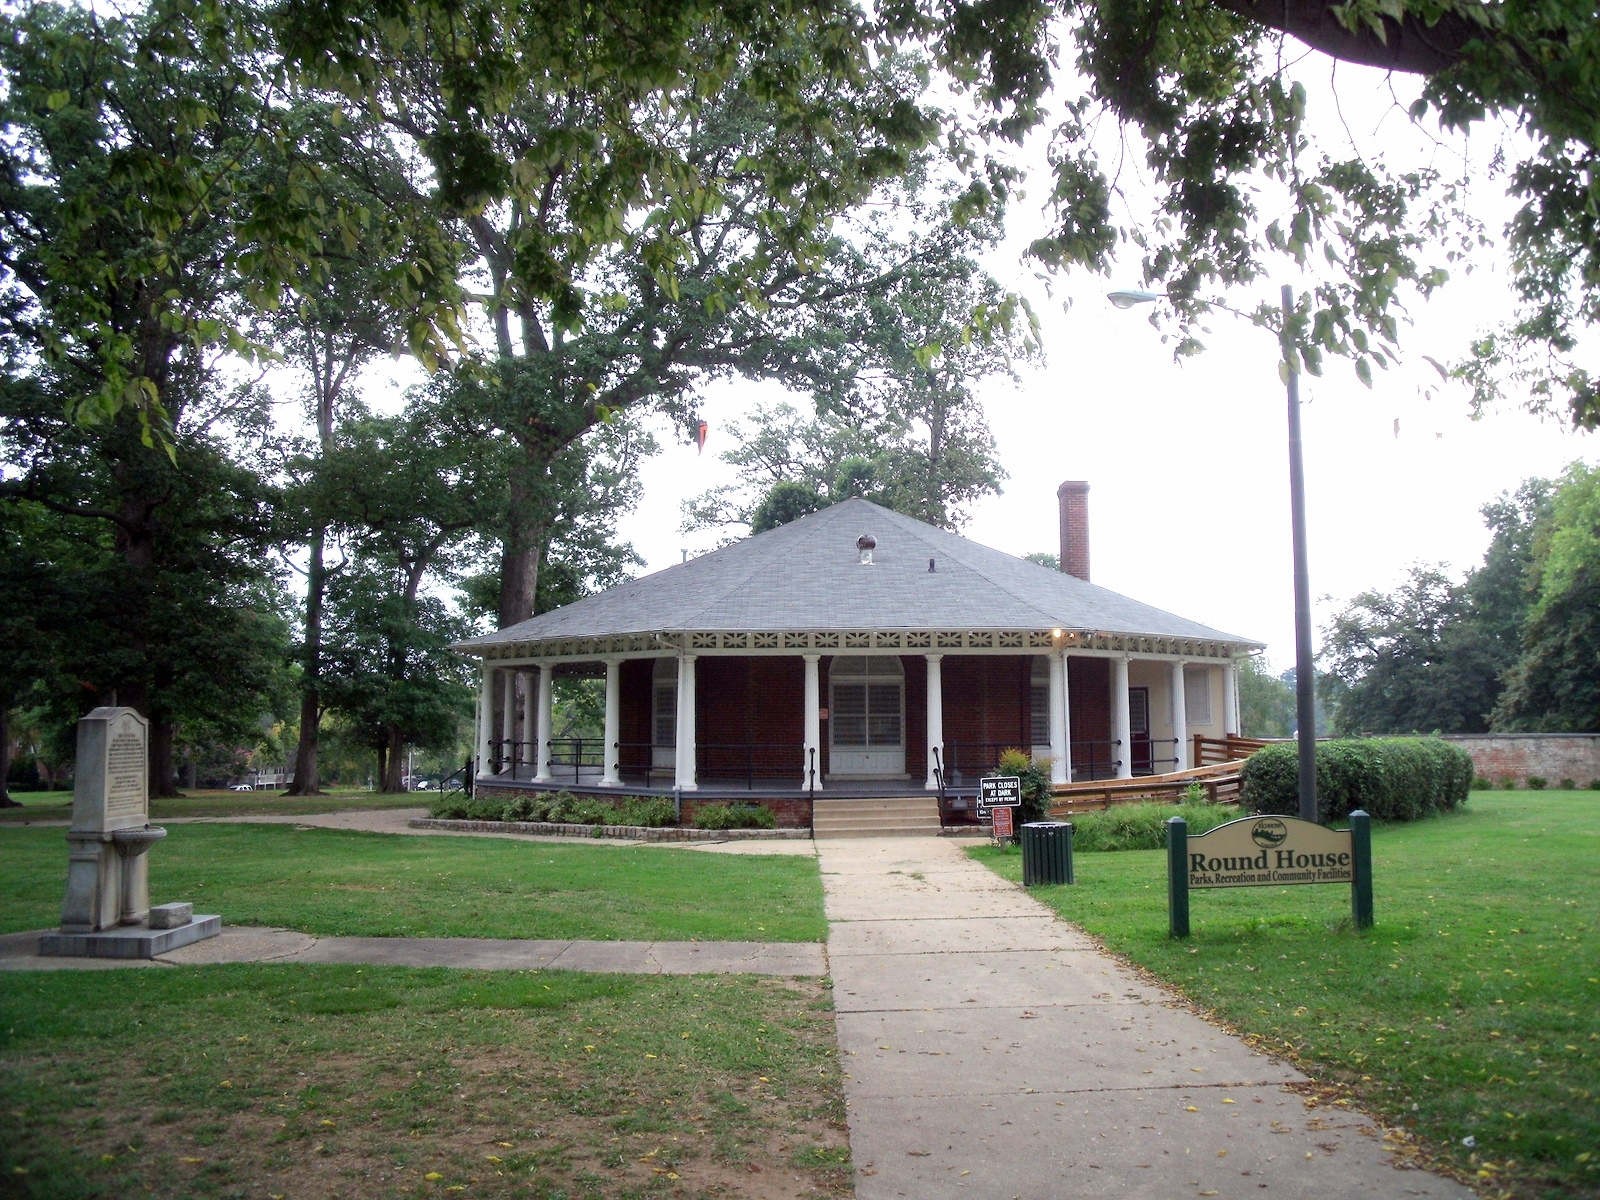 The Round House at Byrd Park